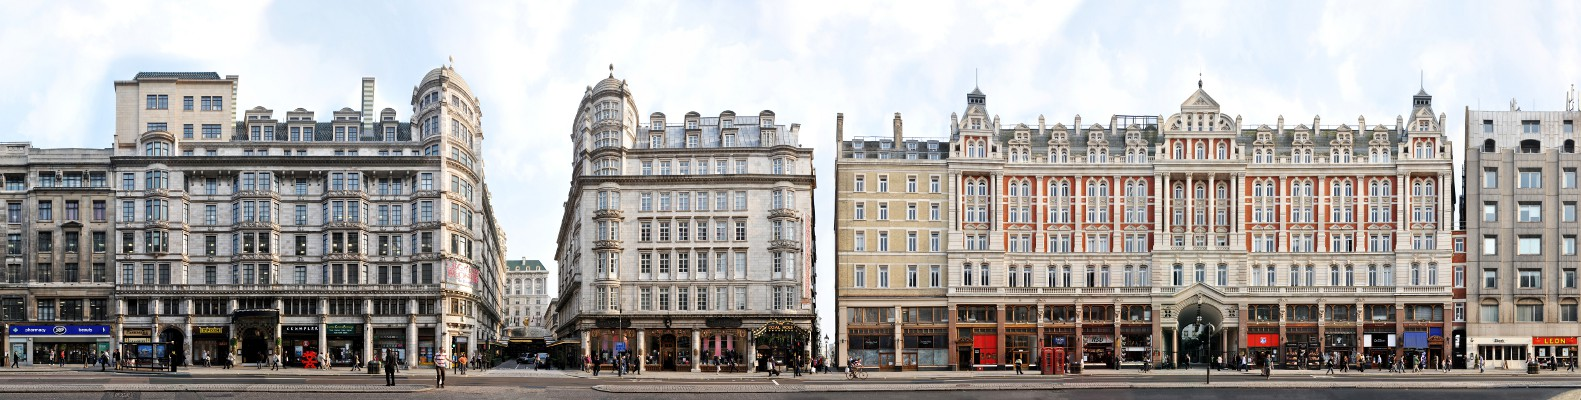 London Strand Savoy Panorama